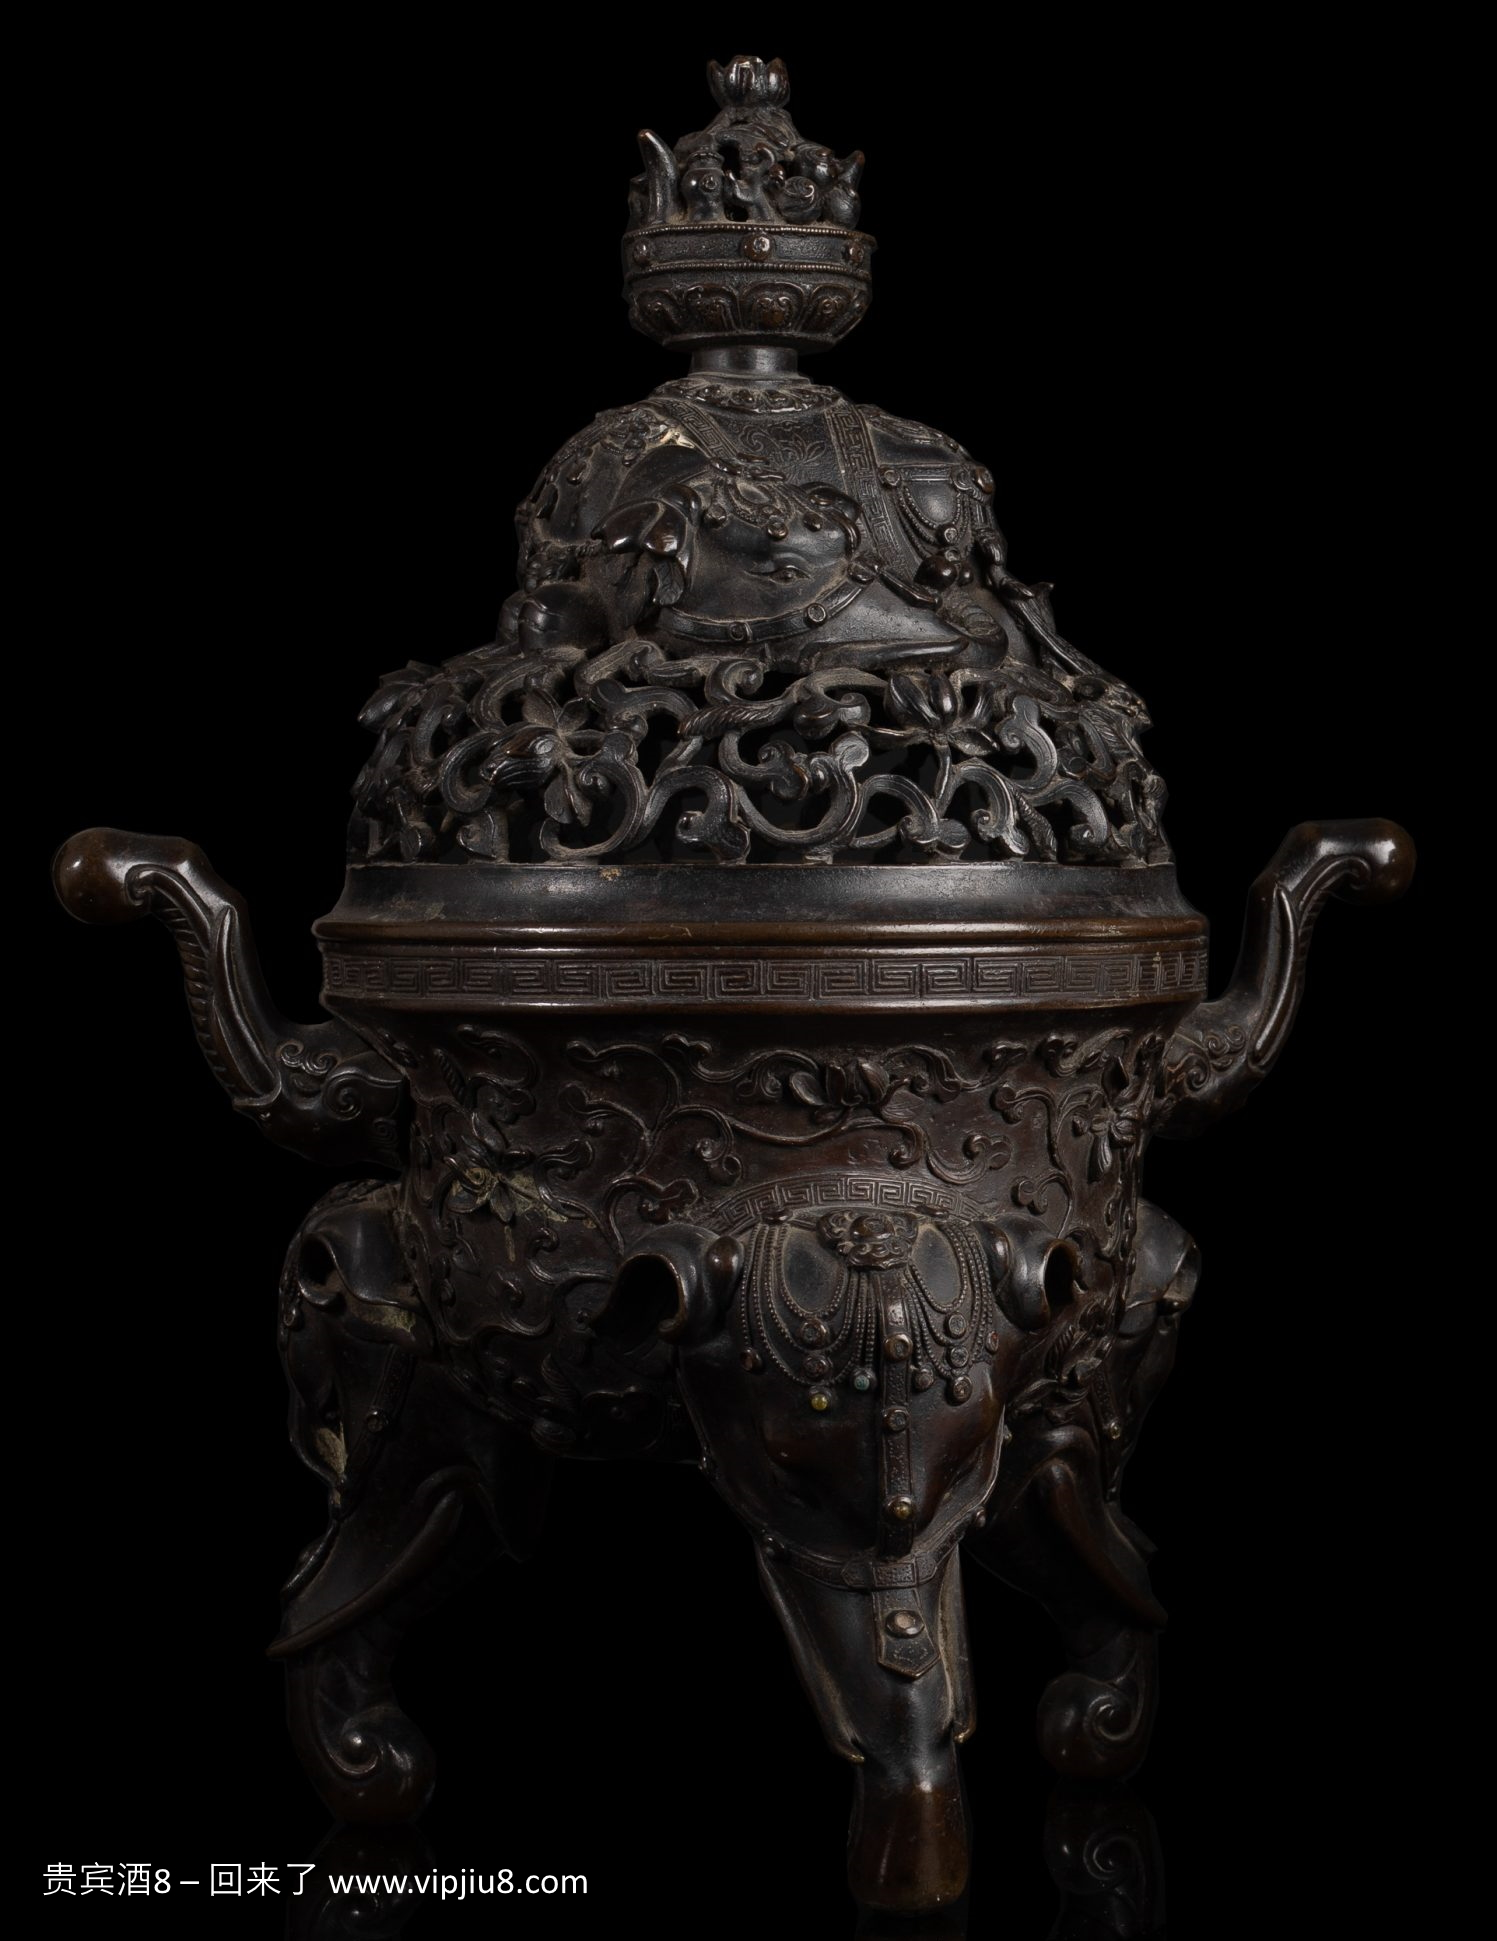 Bronze Elephant Tripod Censer & Reticulated Cover